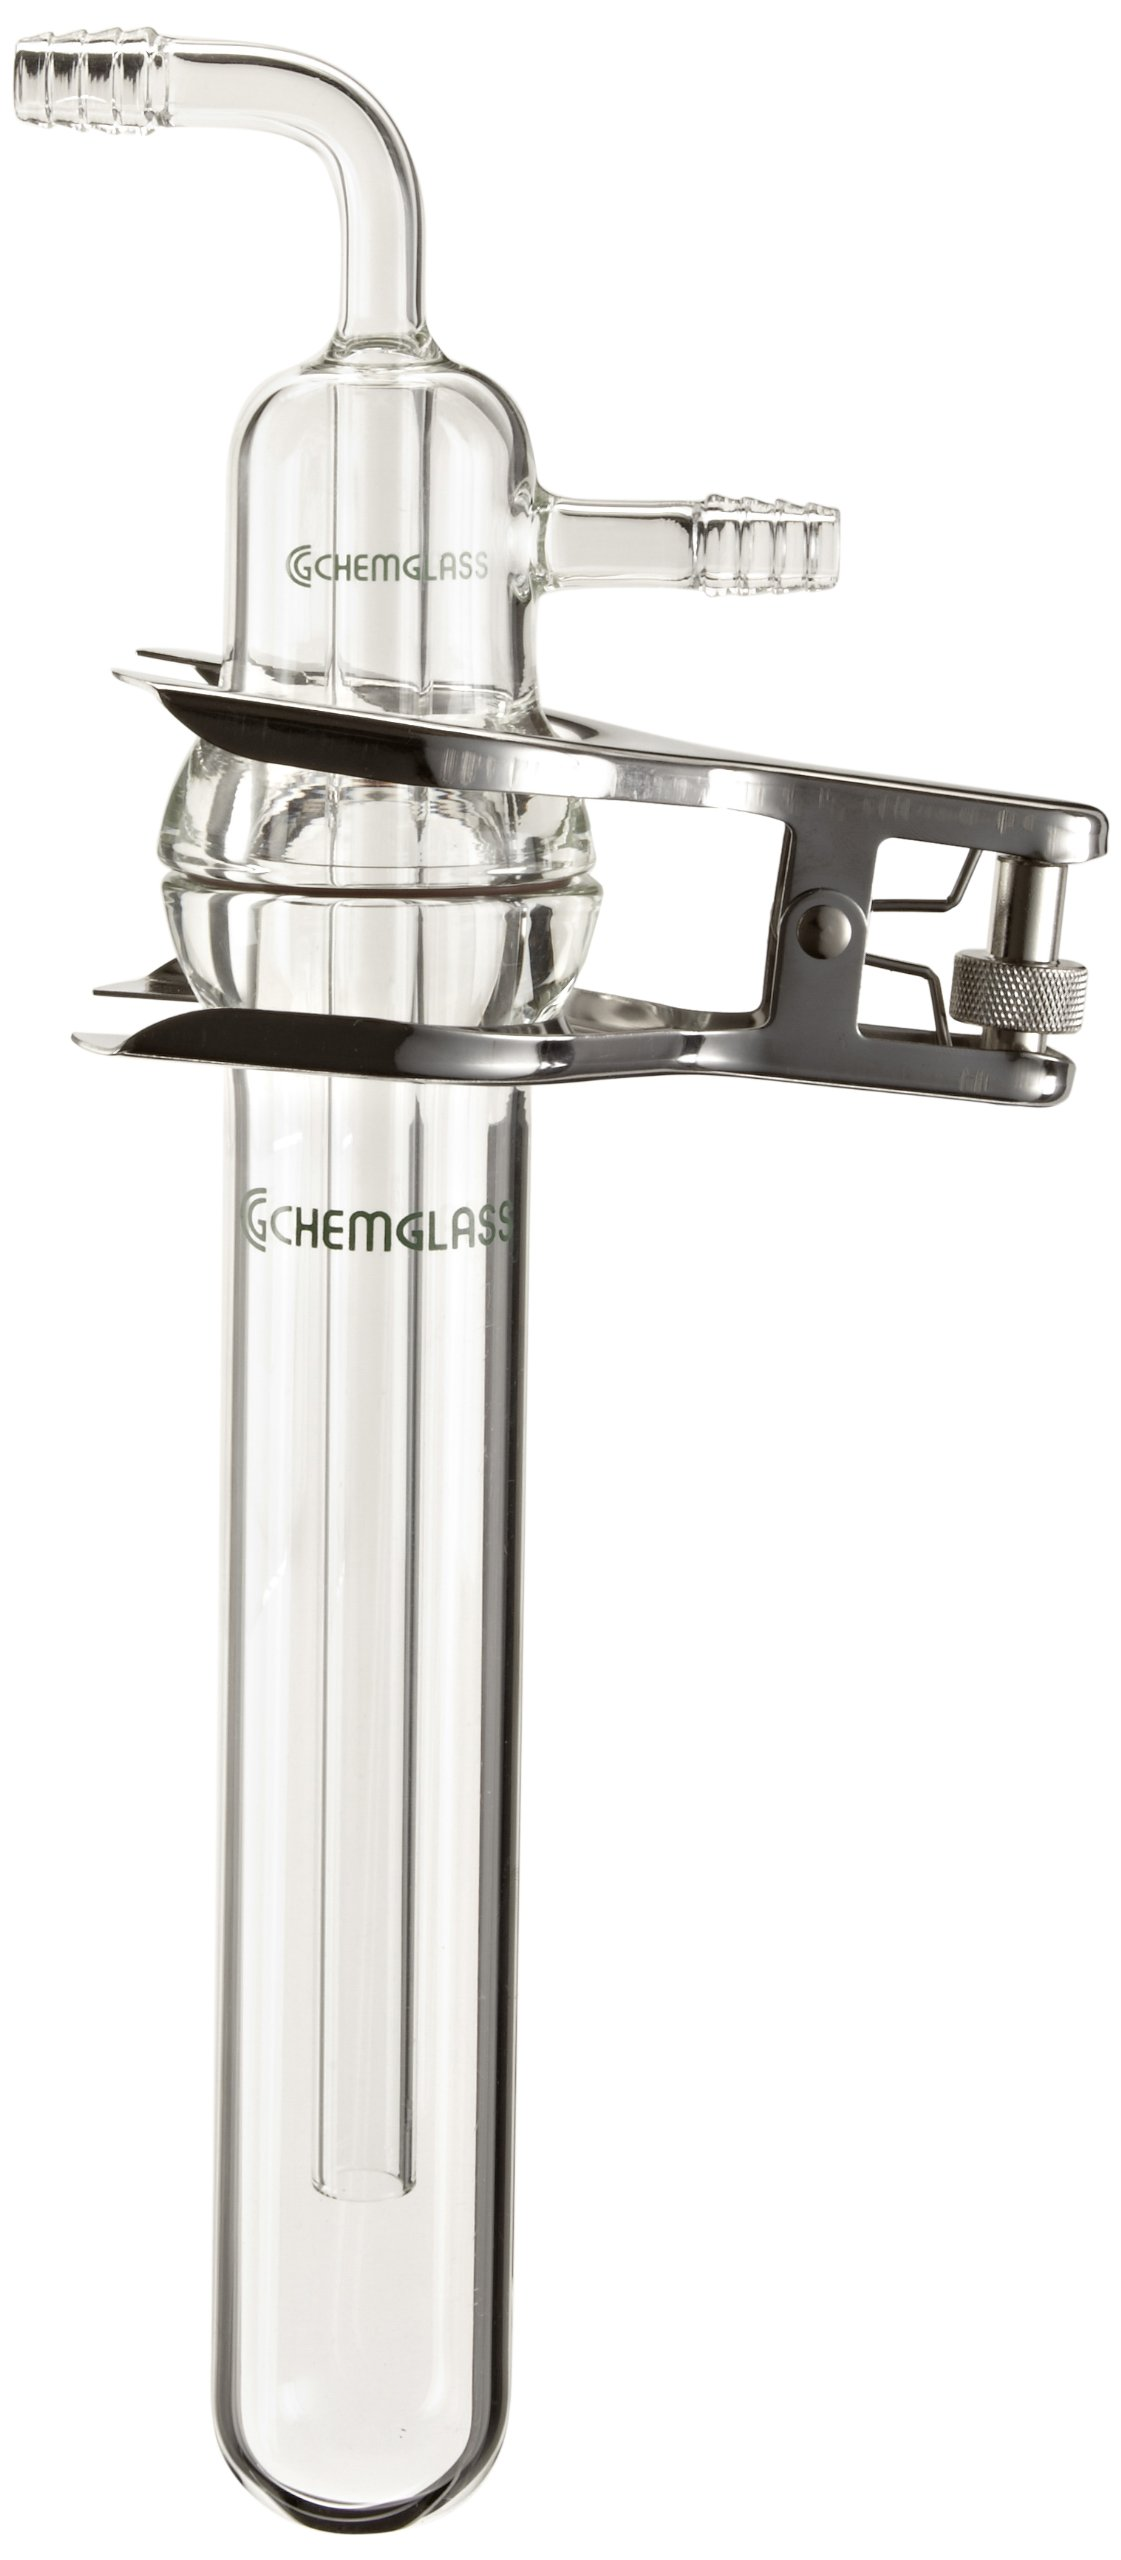 Chemglass CG-4513-11 Vacuum Trap with #40 O-Ring Joint, 45mm OD x 250mm Length by Chemglass